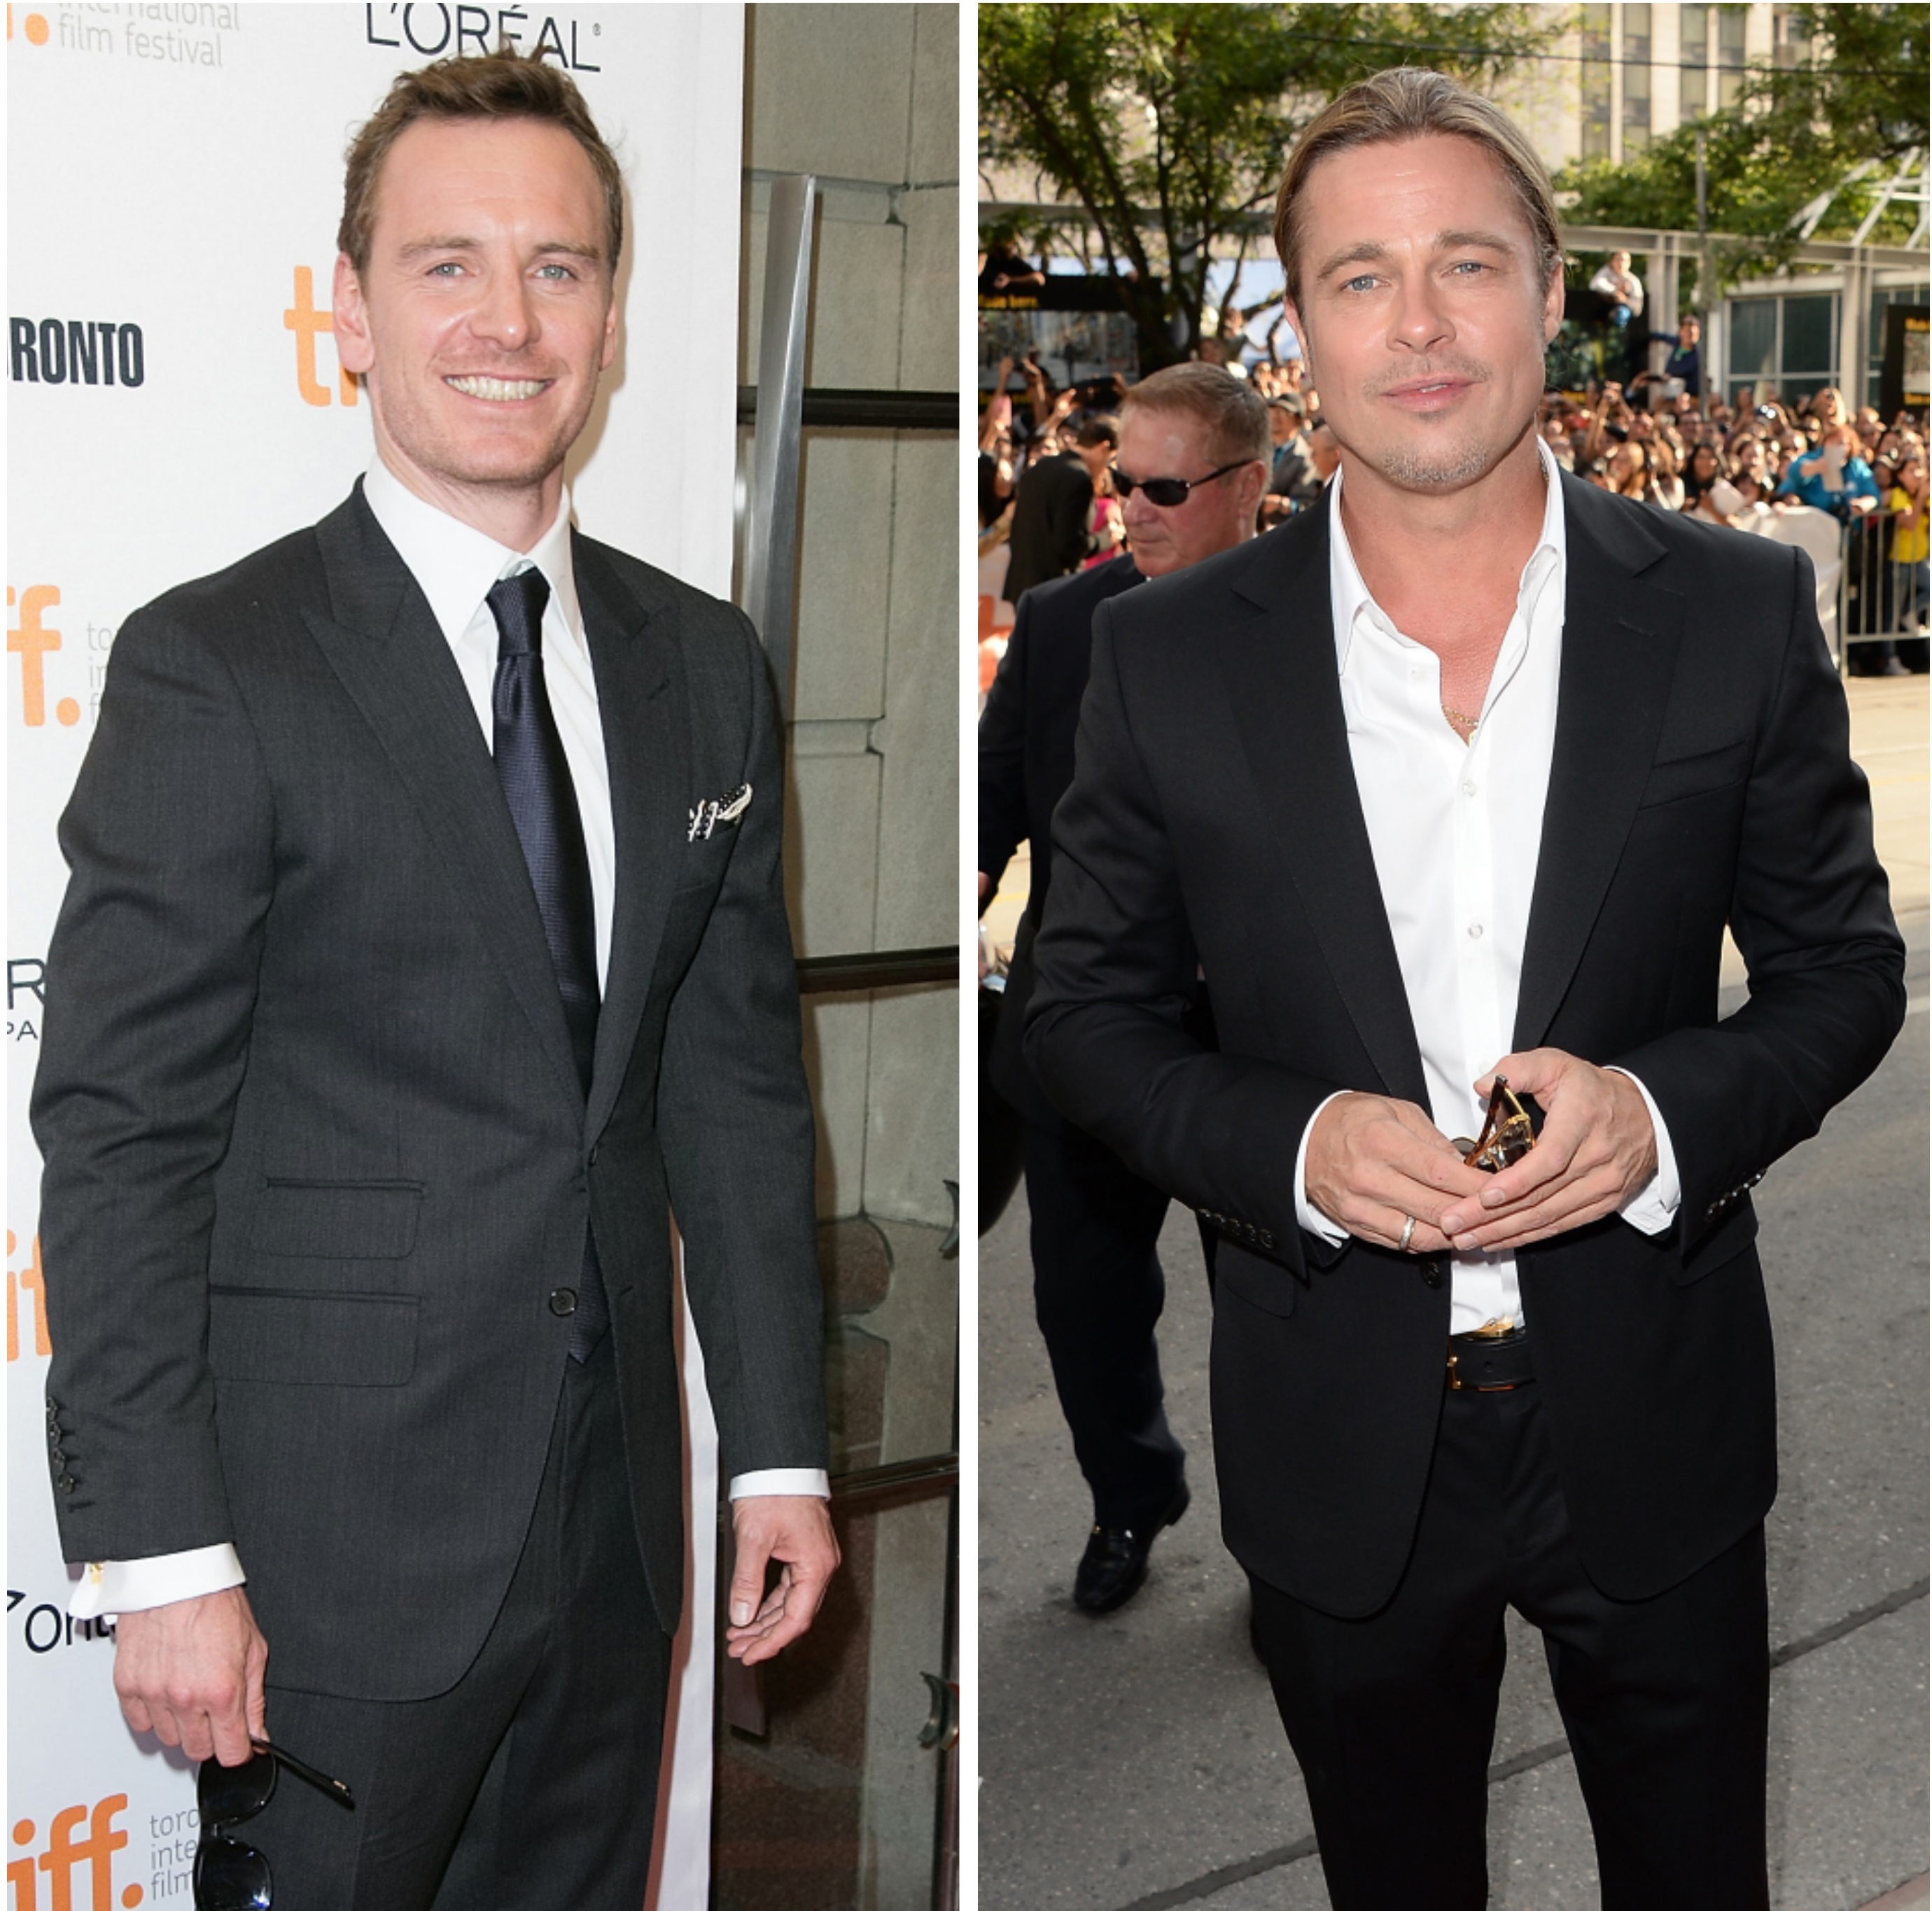 Michael Fassbender, Brad Pitt arrive at